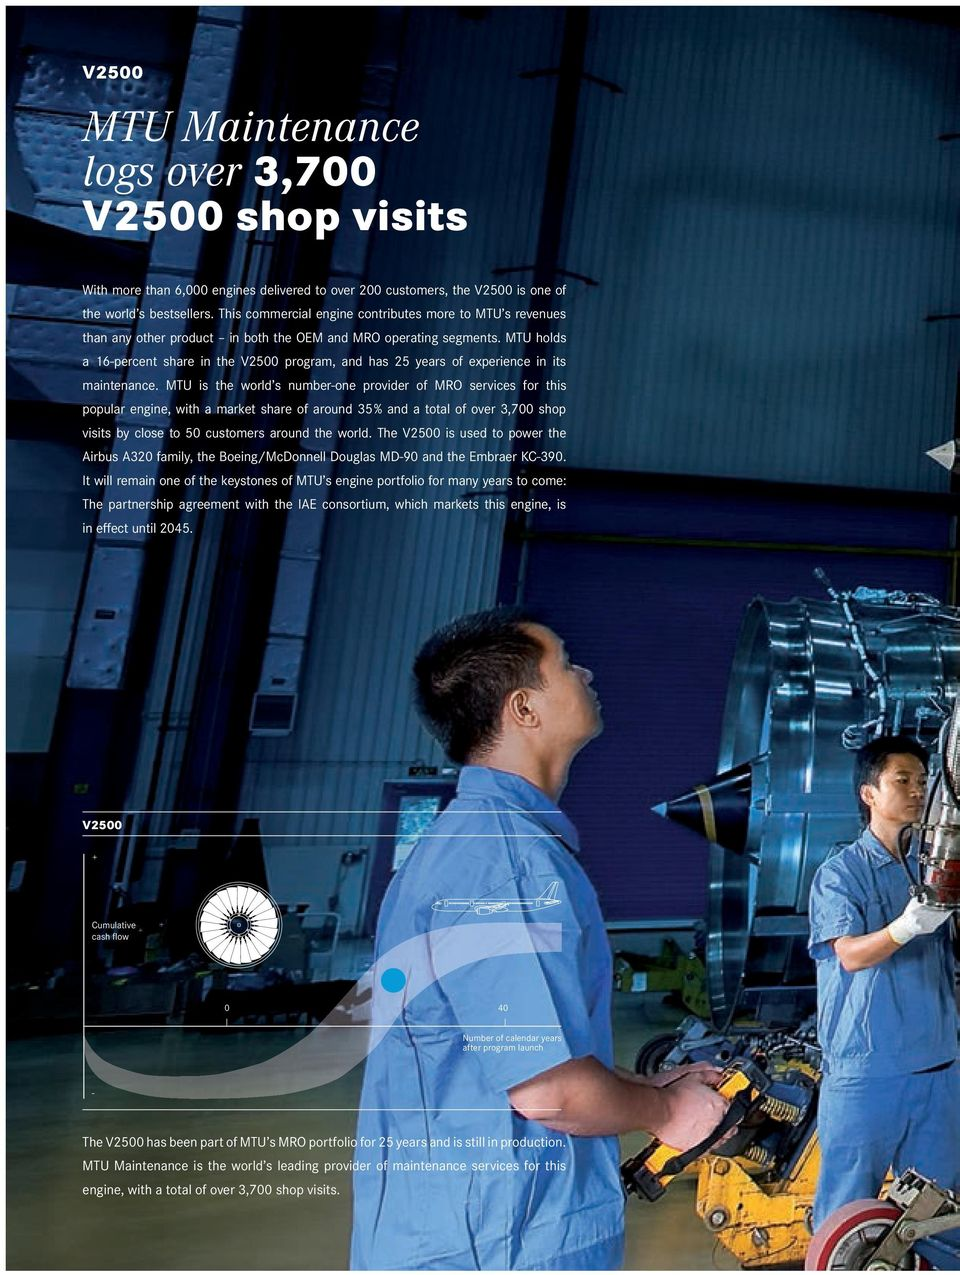 MTU holds a 16-percent share in the V2500 program, and has 25 years of experience in its maintenance.